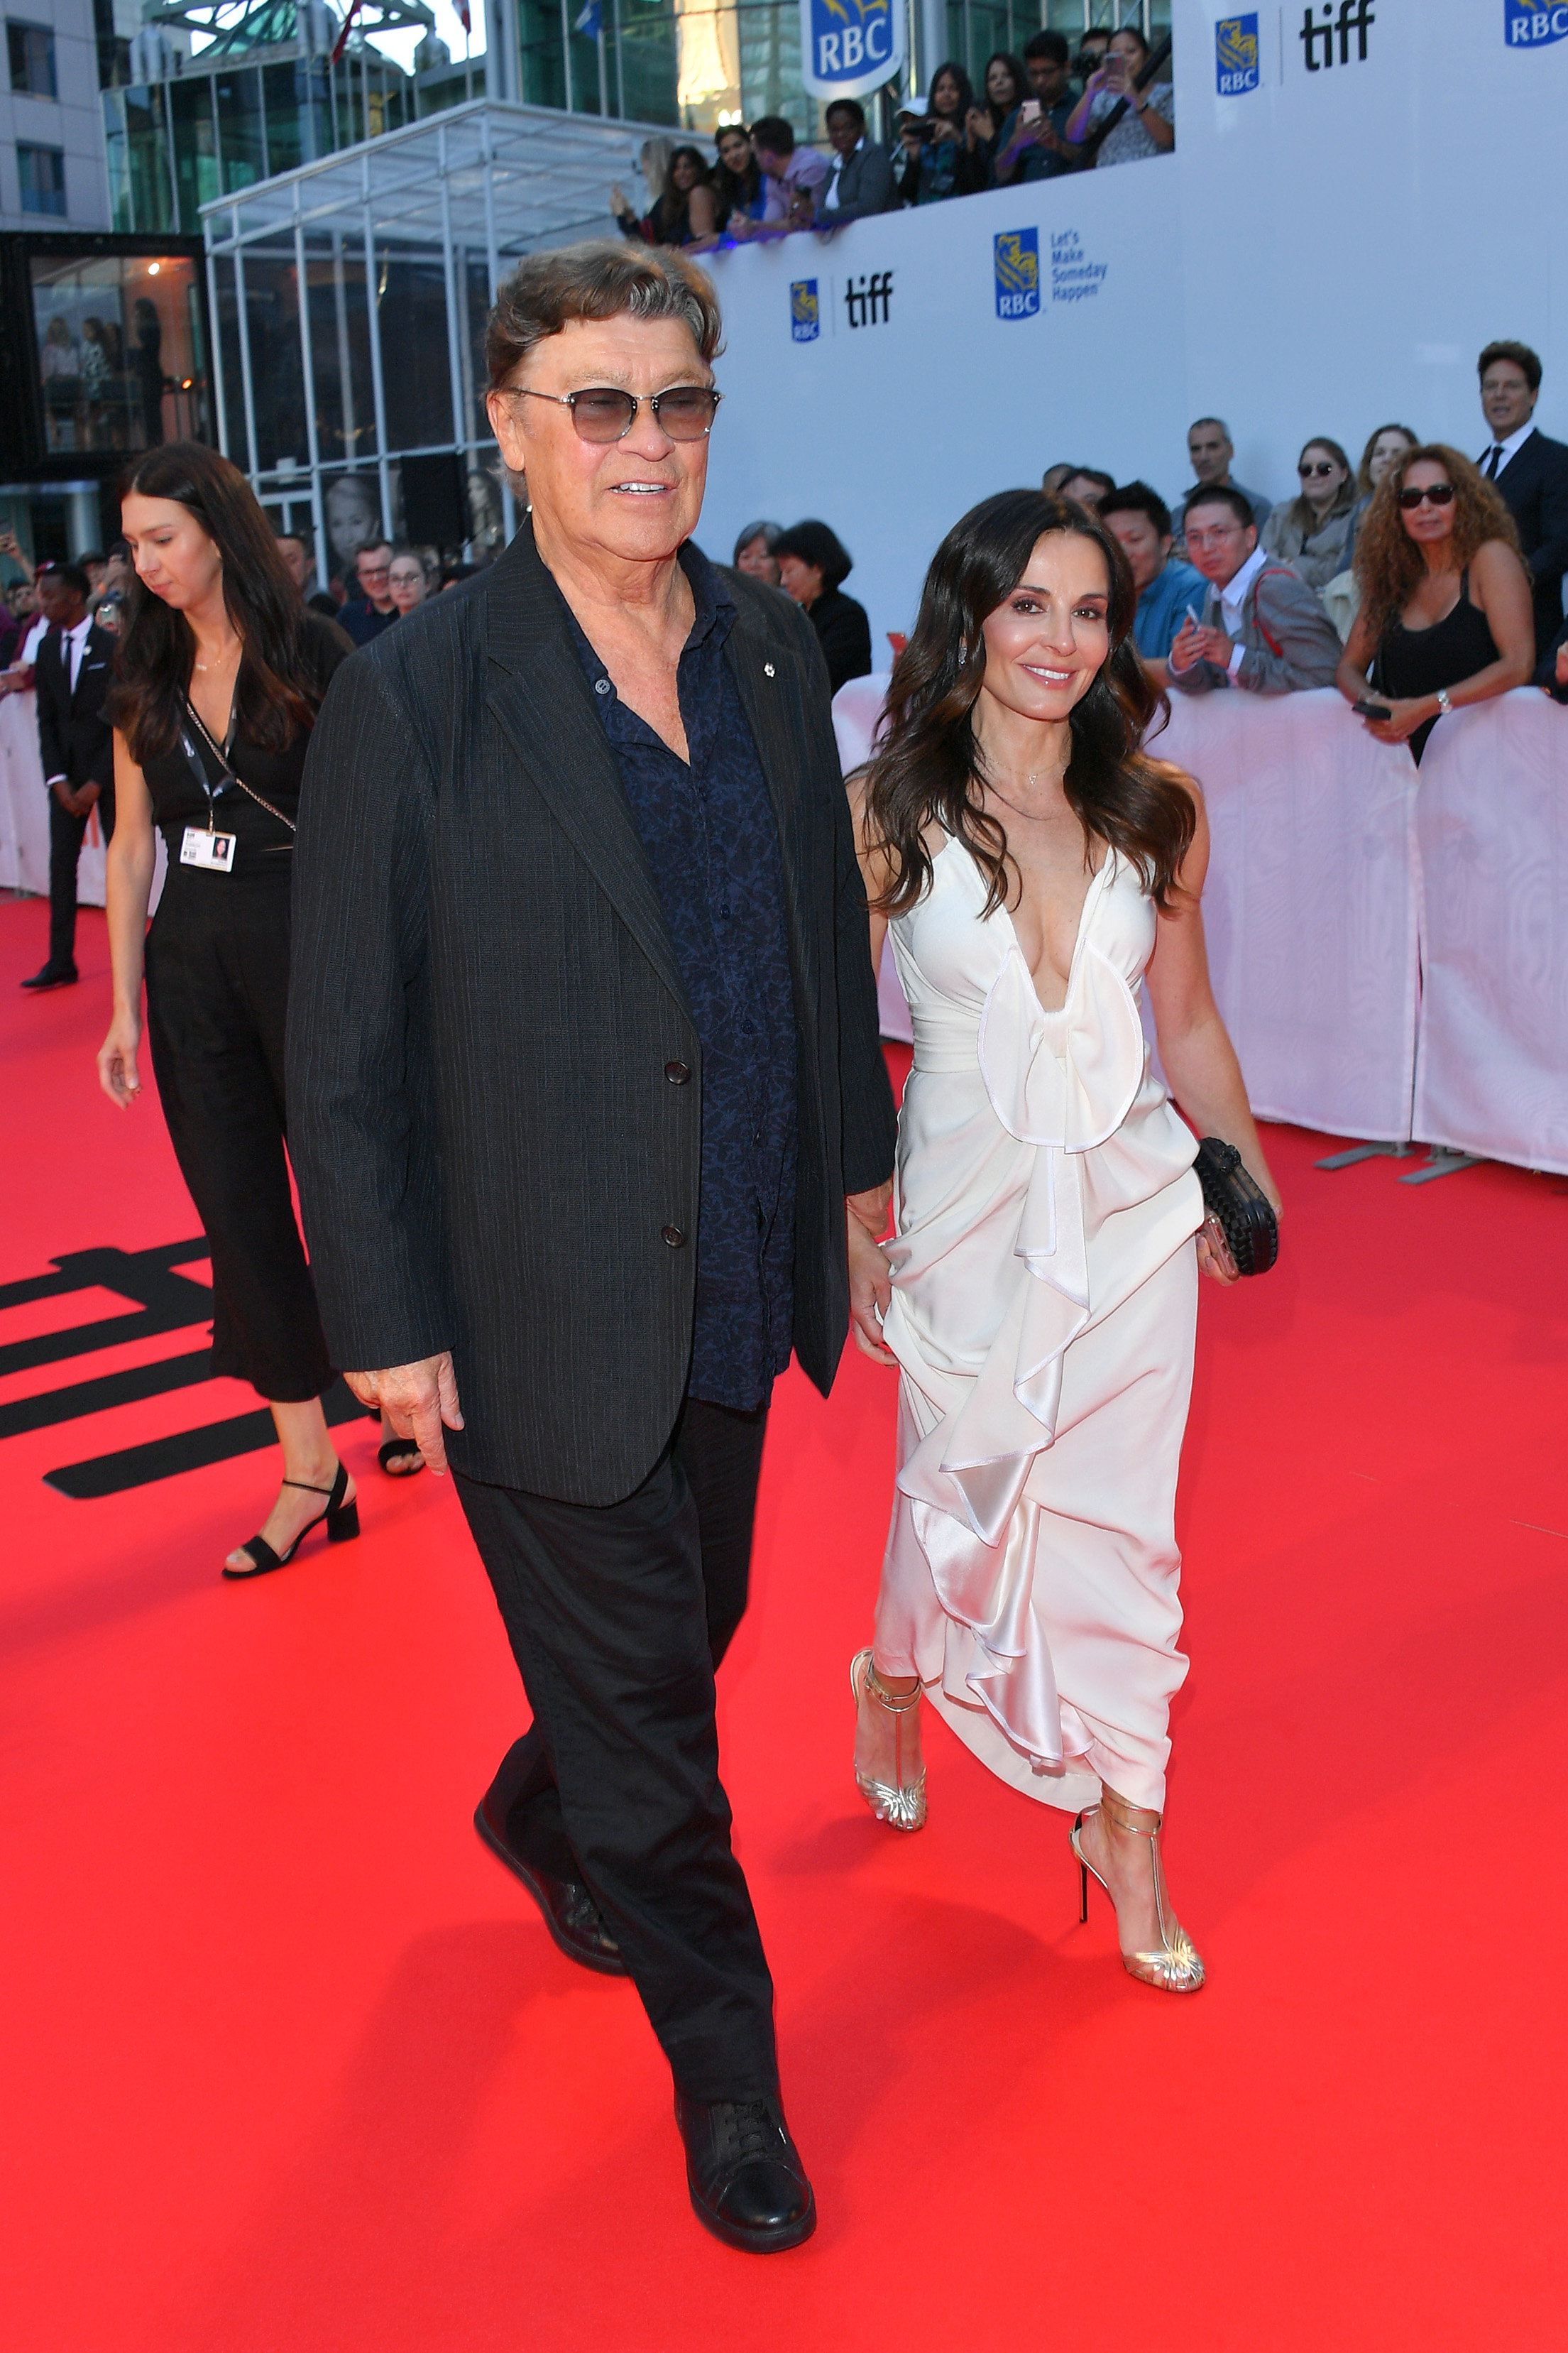 Robbie Robertson and Janet Zuccarini at TIFF red carpet